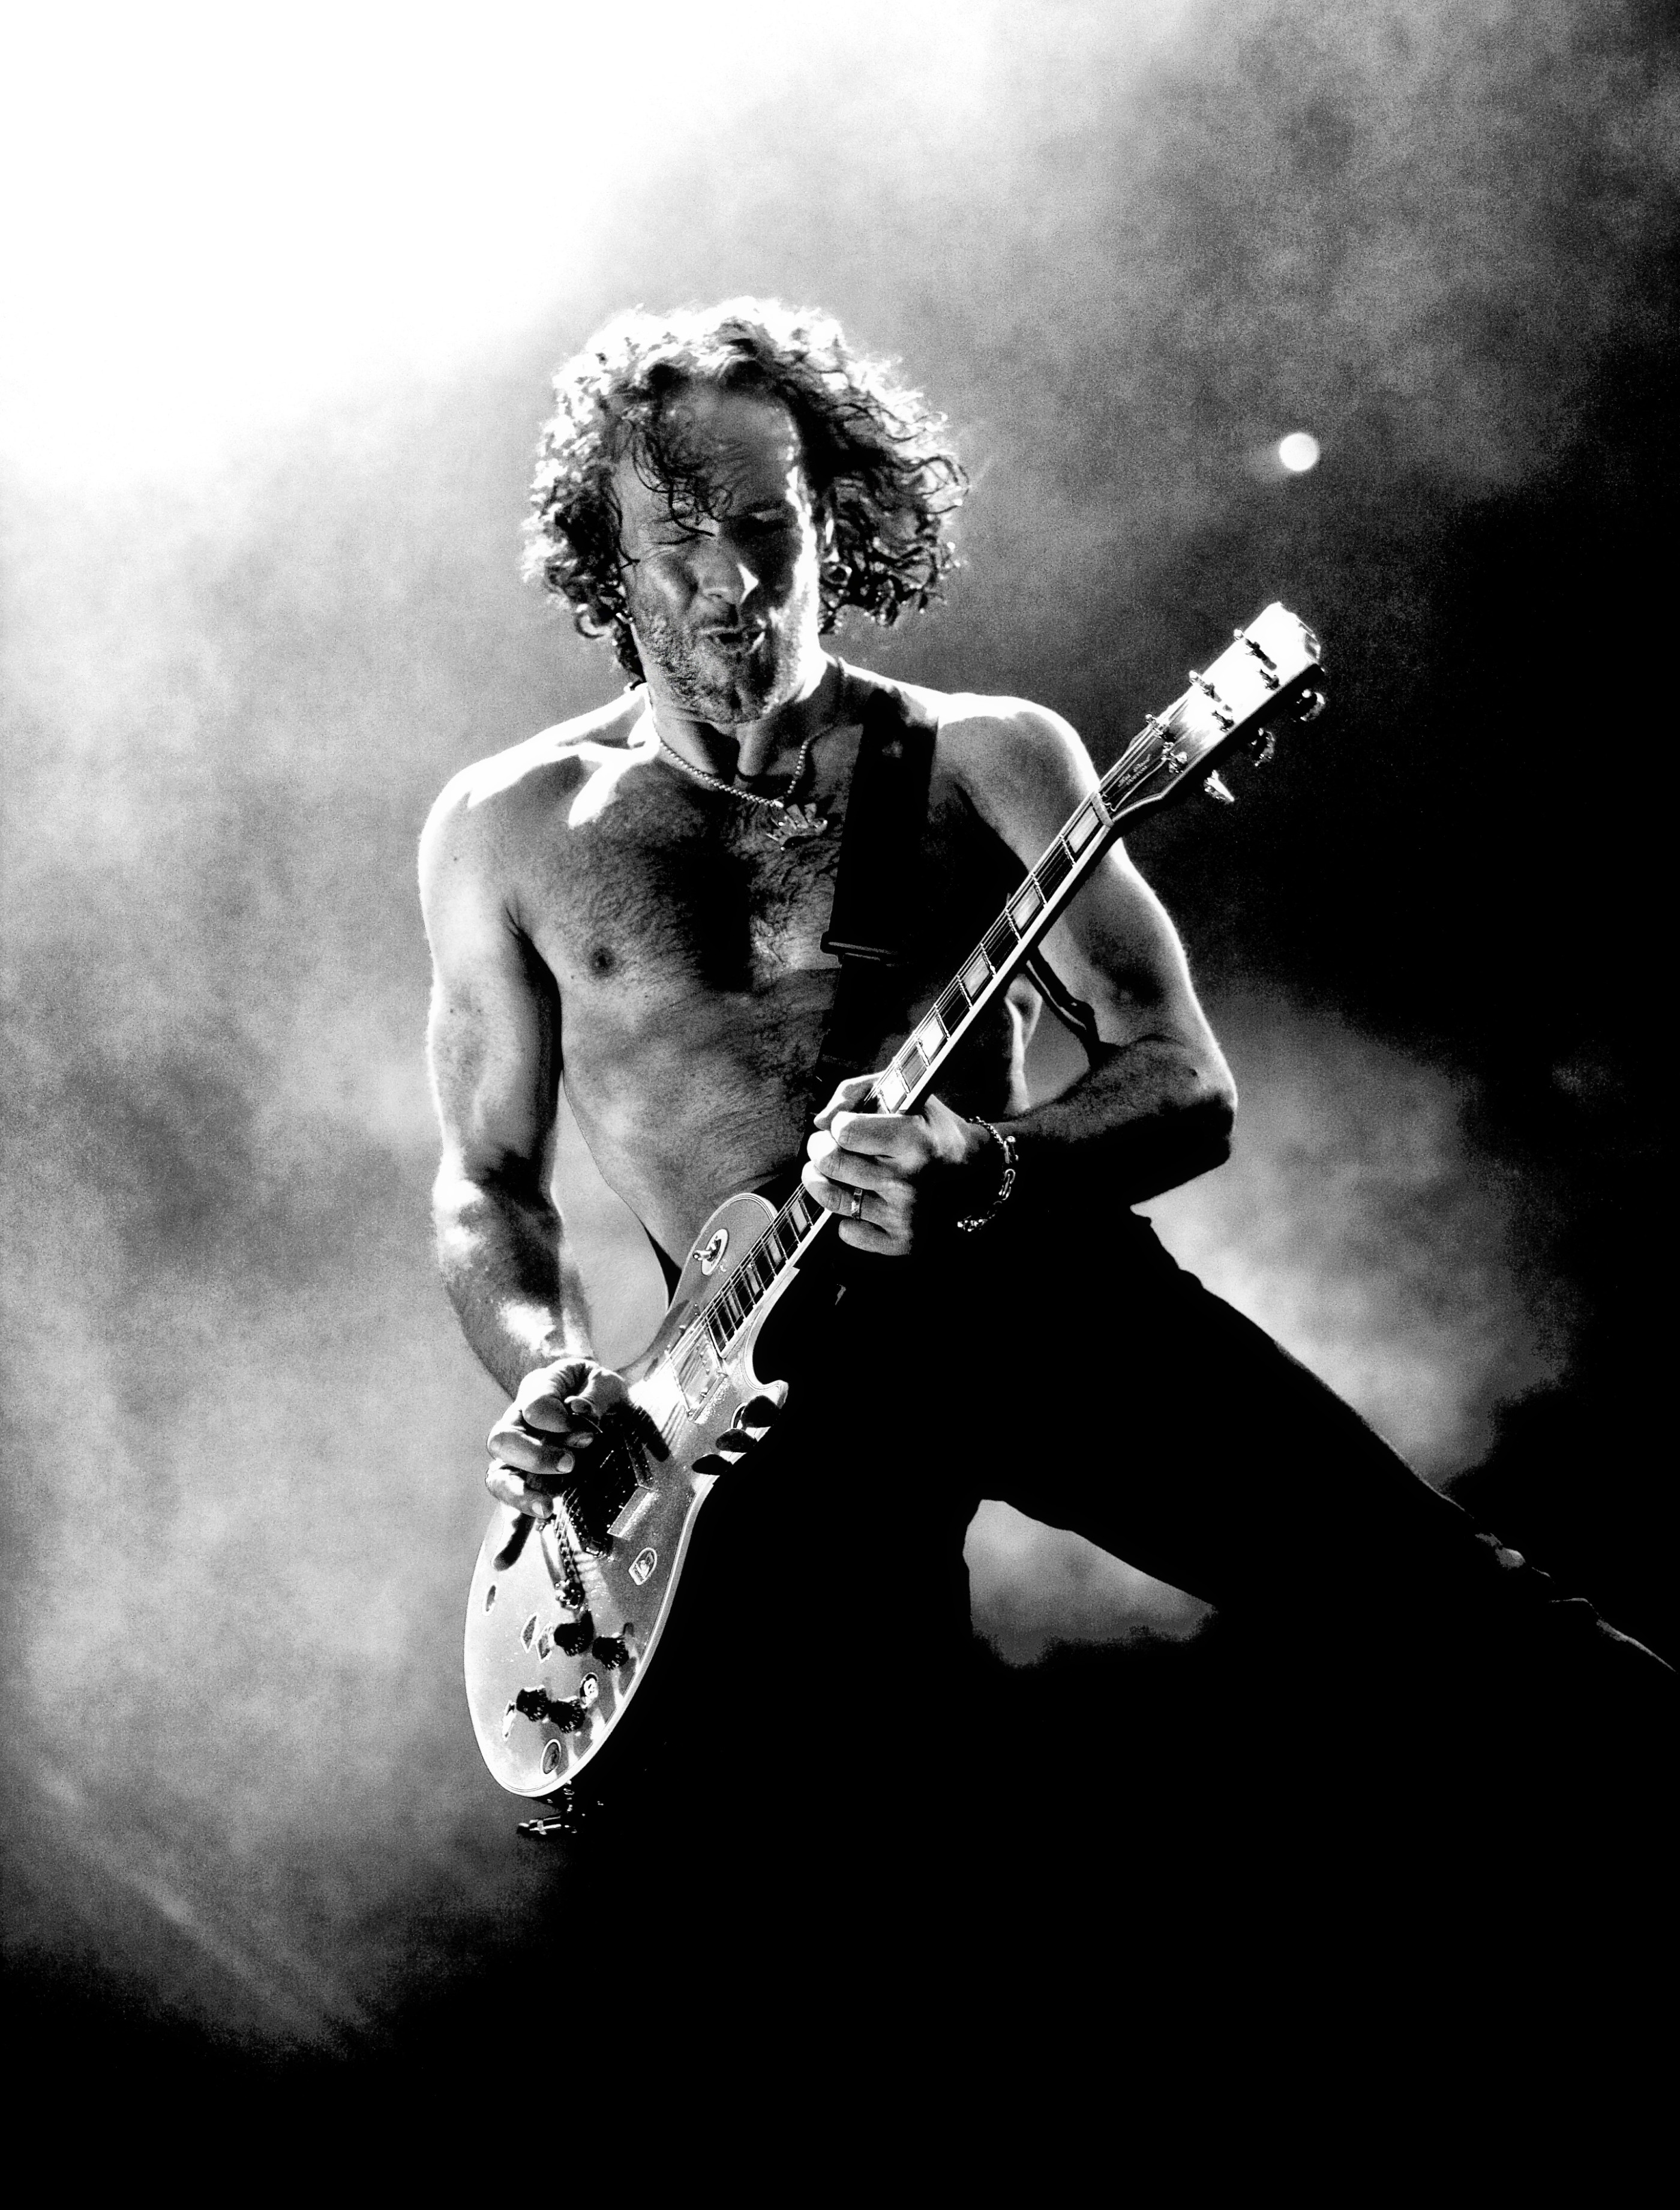 Vivian Campbell onstage at the M.E.N. Arena in Manchester 2008